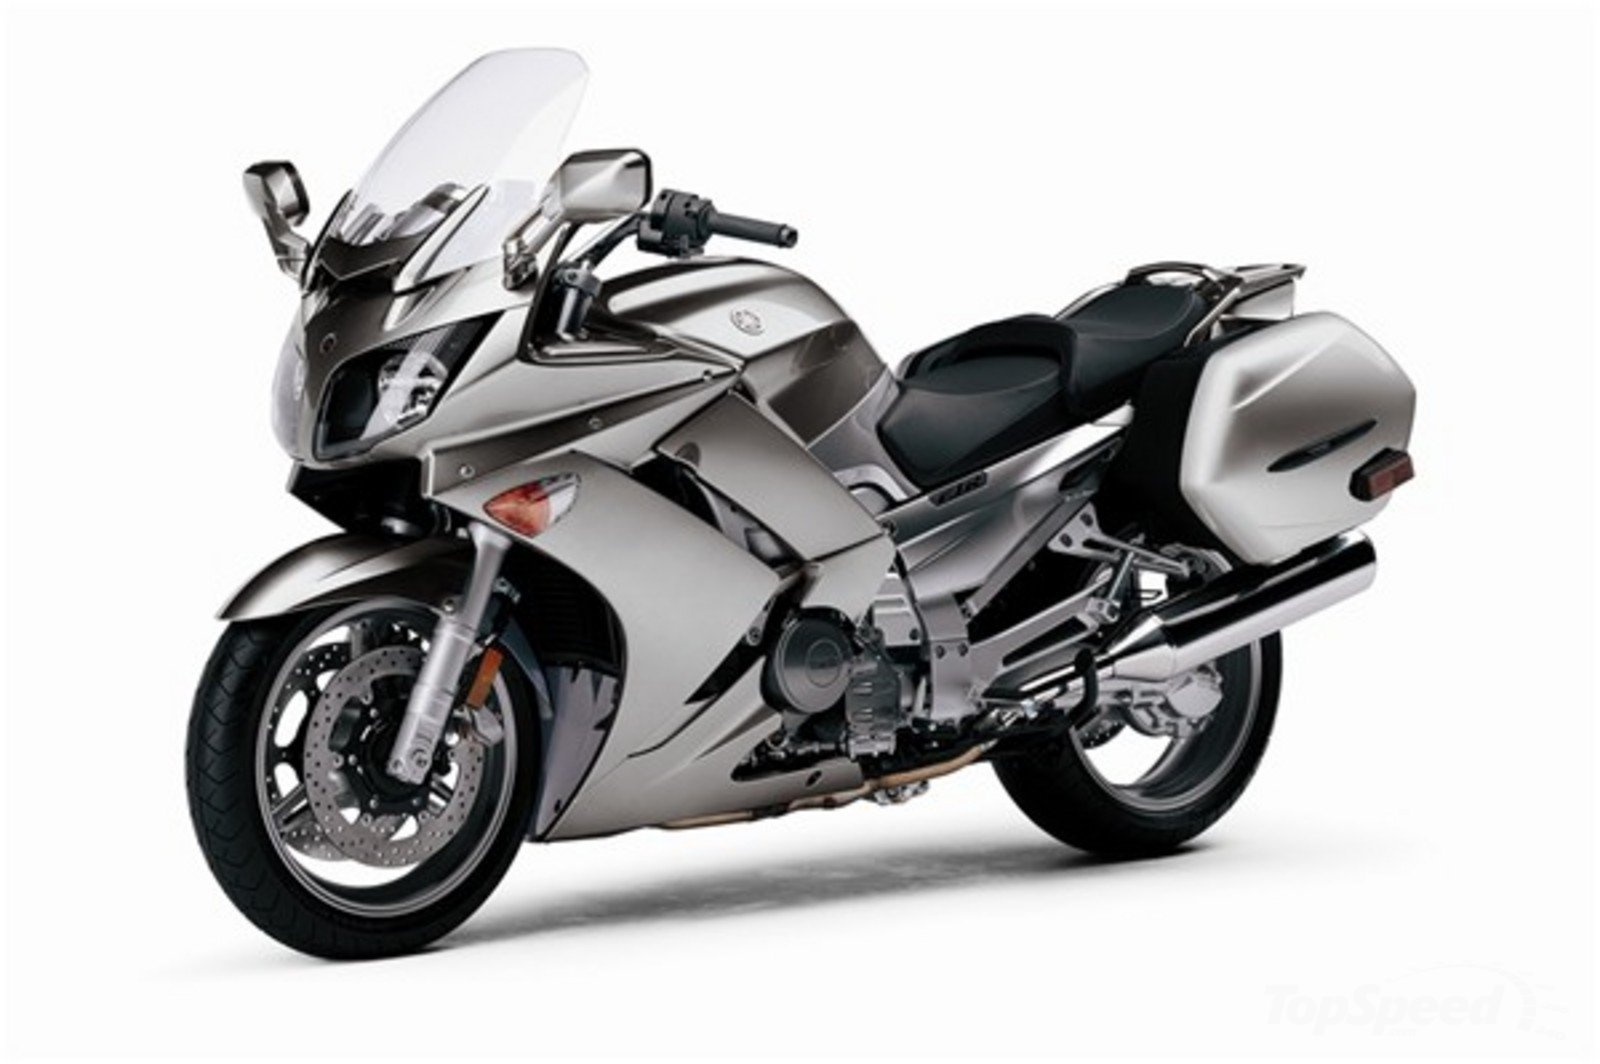 2007 yamaha fjr1300ae review top speed. Black Bedroom Furniture Sets. Home Design Ideas